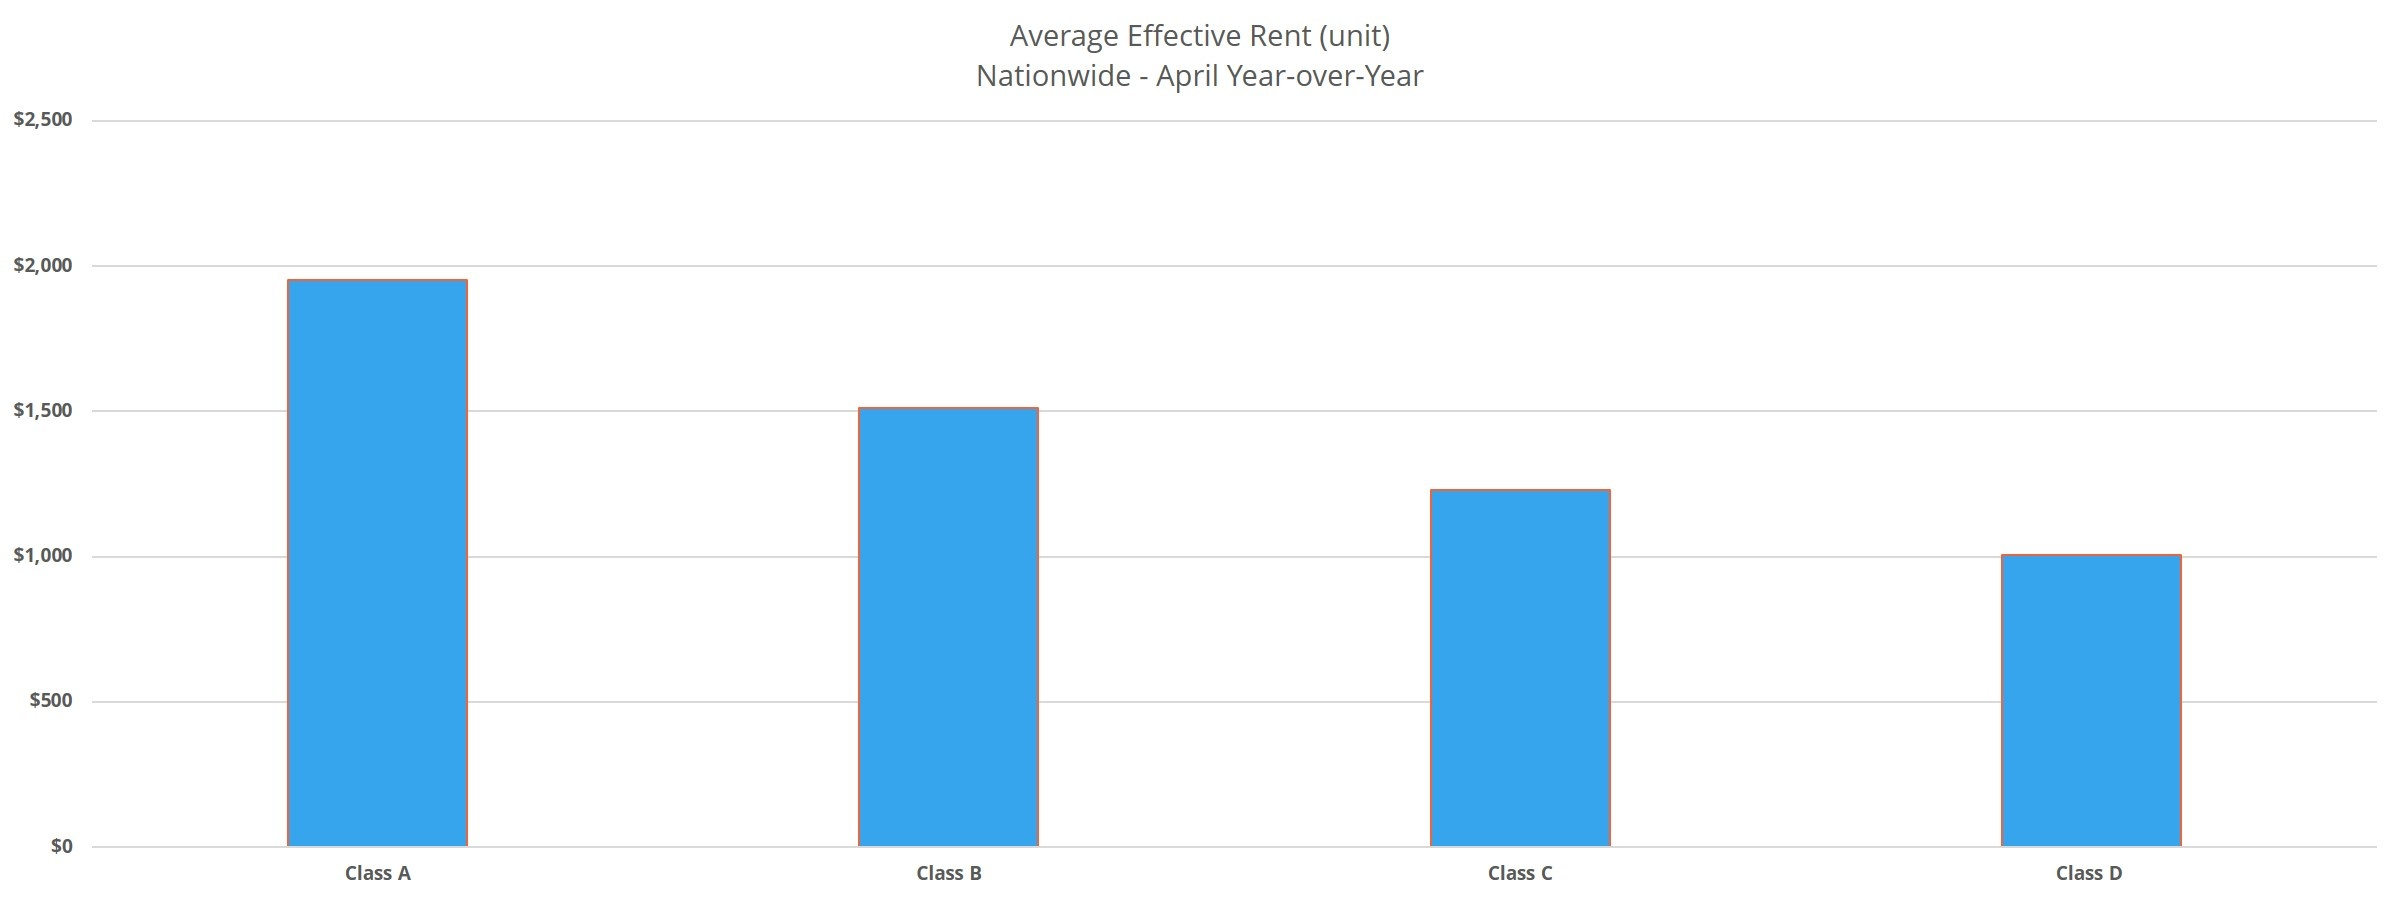 Average Effective Rent (unit) Nationwide - April Year-over-Year